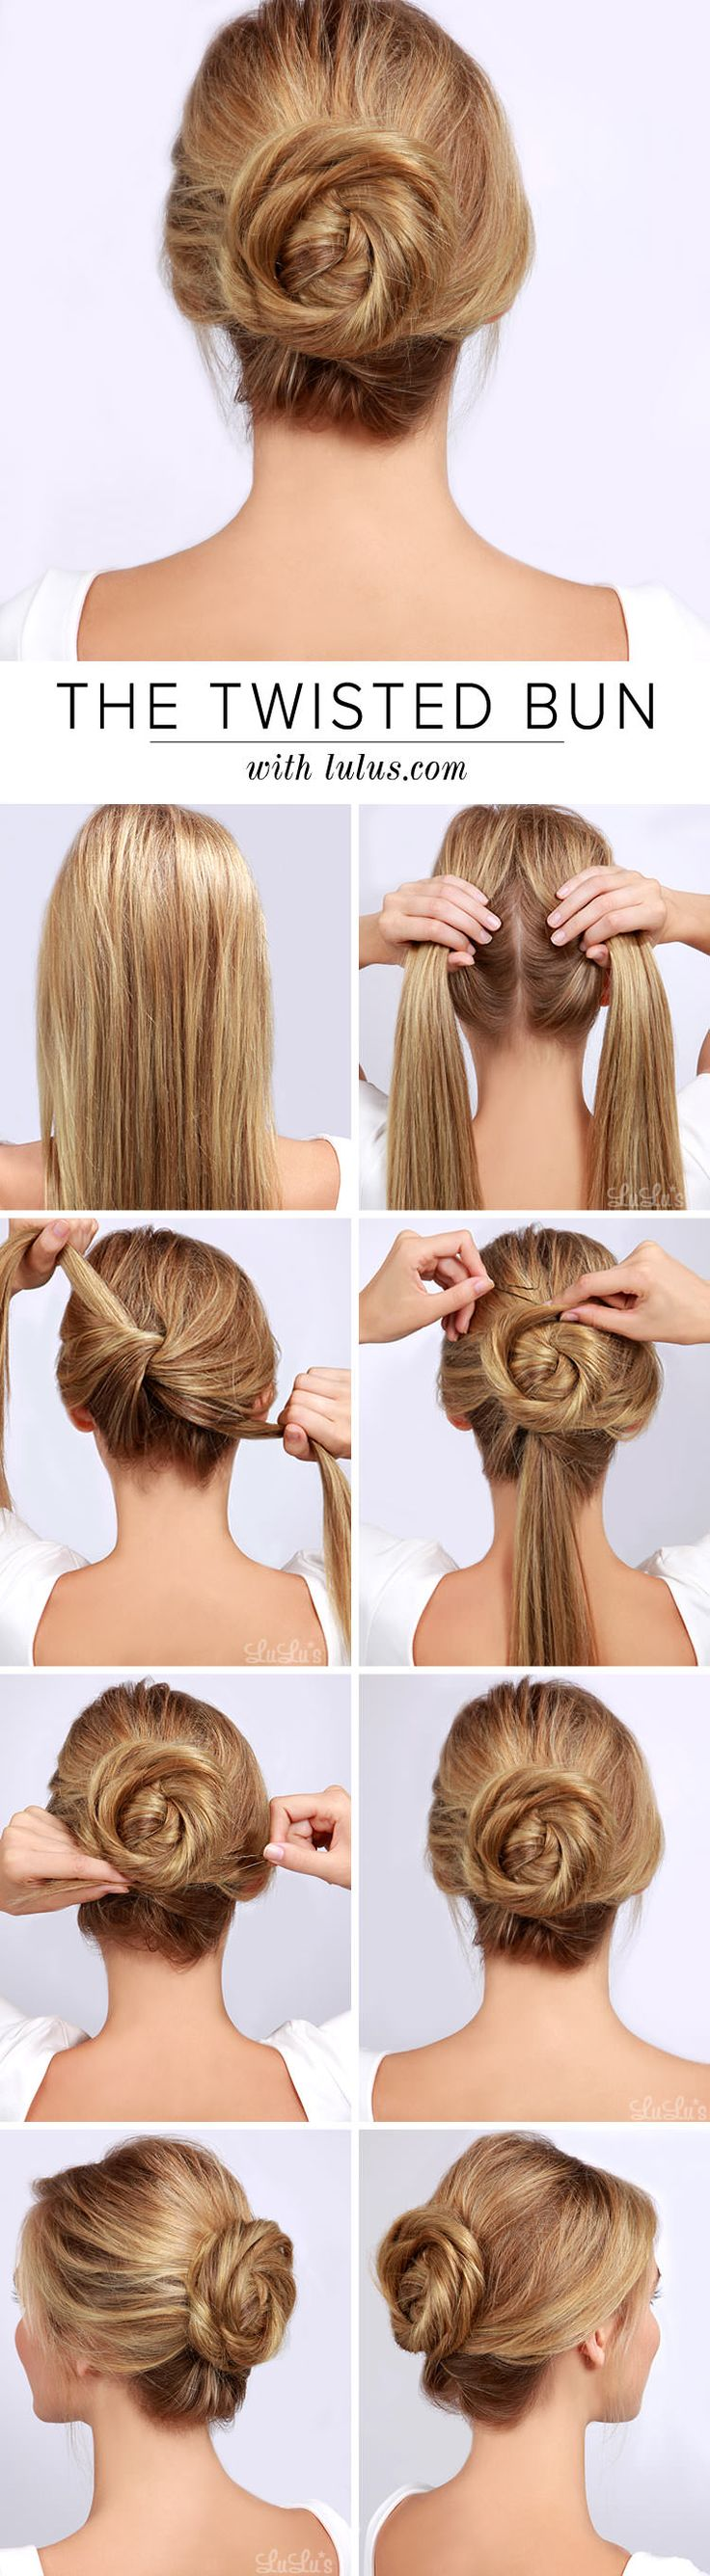 Miraculous 1000 Ideas About Cute Simple Hairstyles On Pinterest Simple Hairstyle Inspiration Daily Dogsangcom